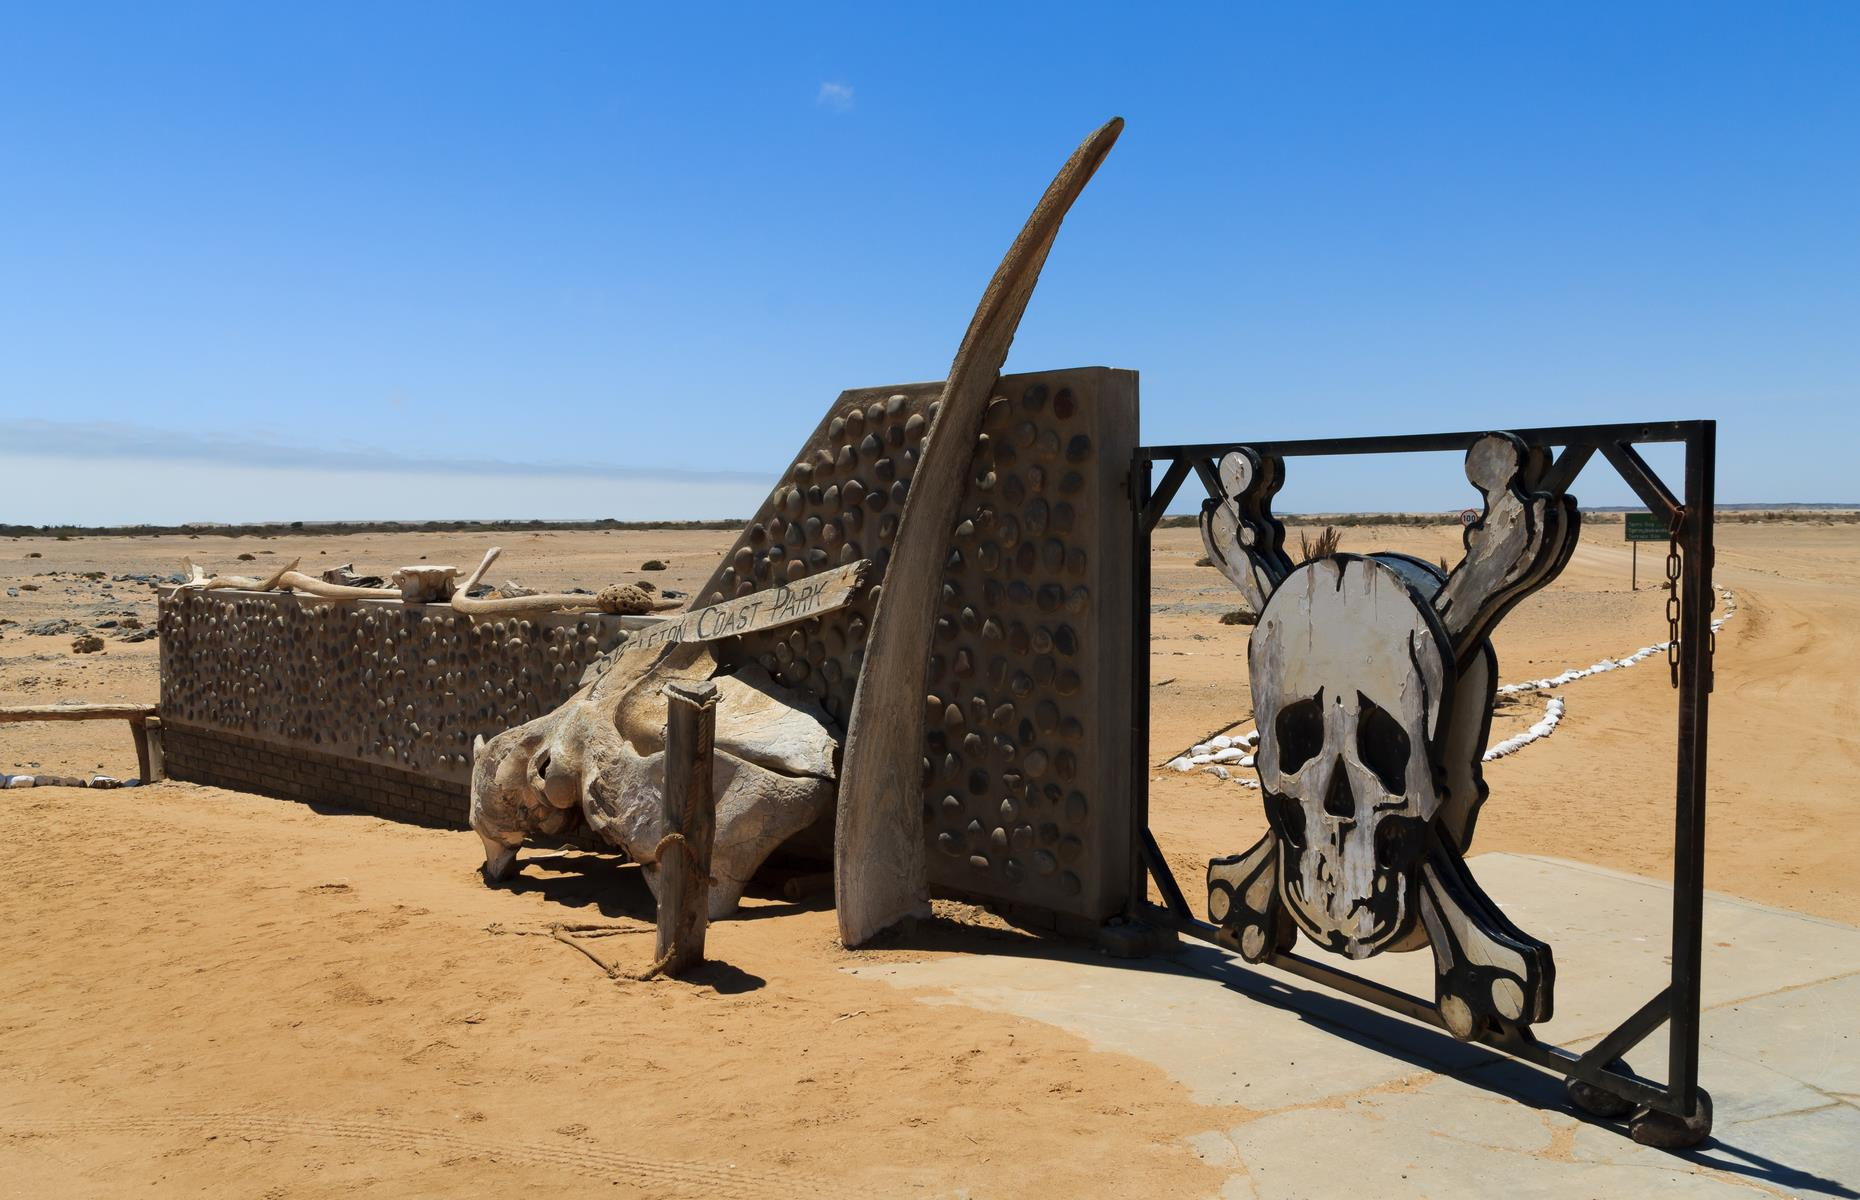 Slide 17 of 51: Brave tourists can usually visit the now 6,200 square miles (16,000sq km) of Skeleton Coast National Park and marvel at the shipwrecks and skeletons, as well as the dramatic sand dunes of the desert. Take a look at these amazing ruins where Mother Nature ran riot.